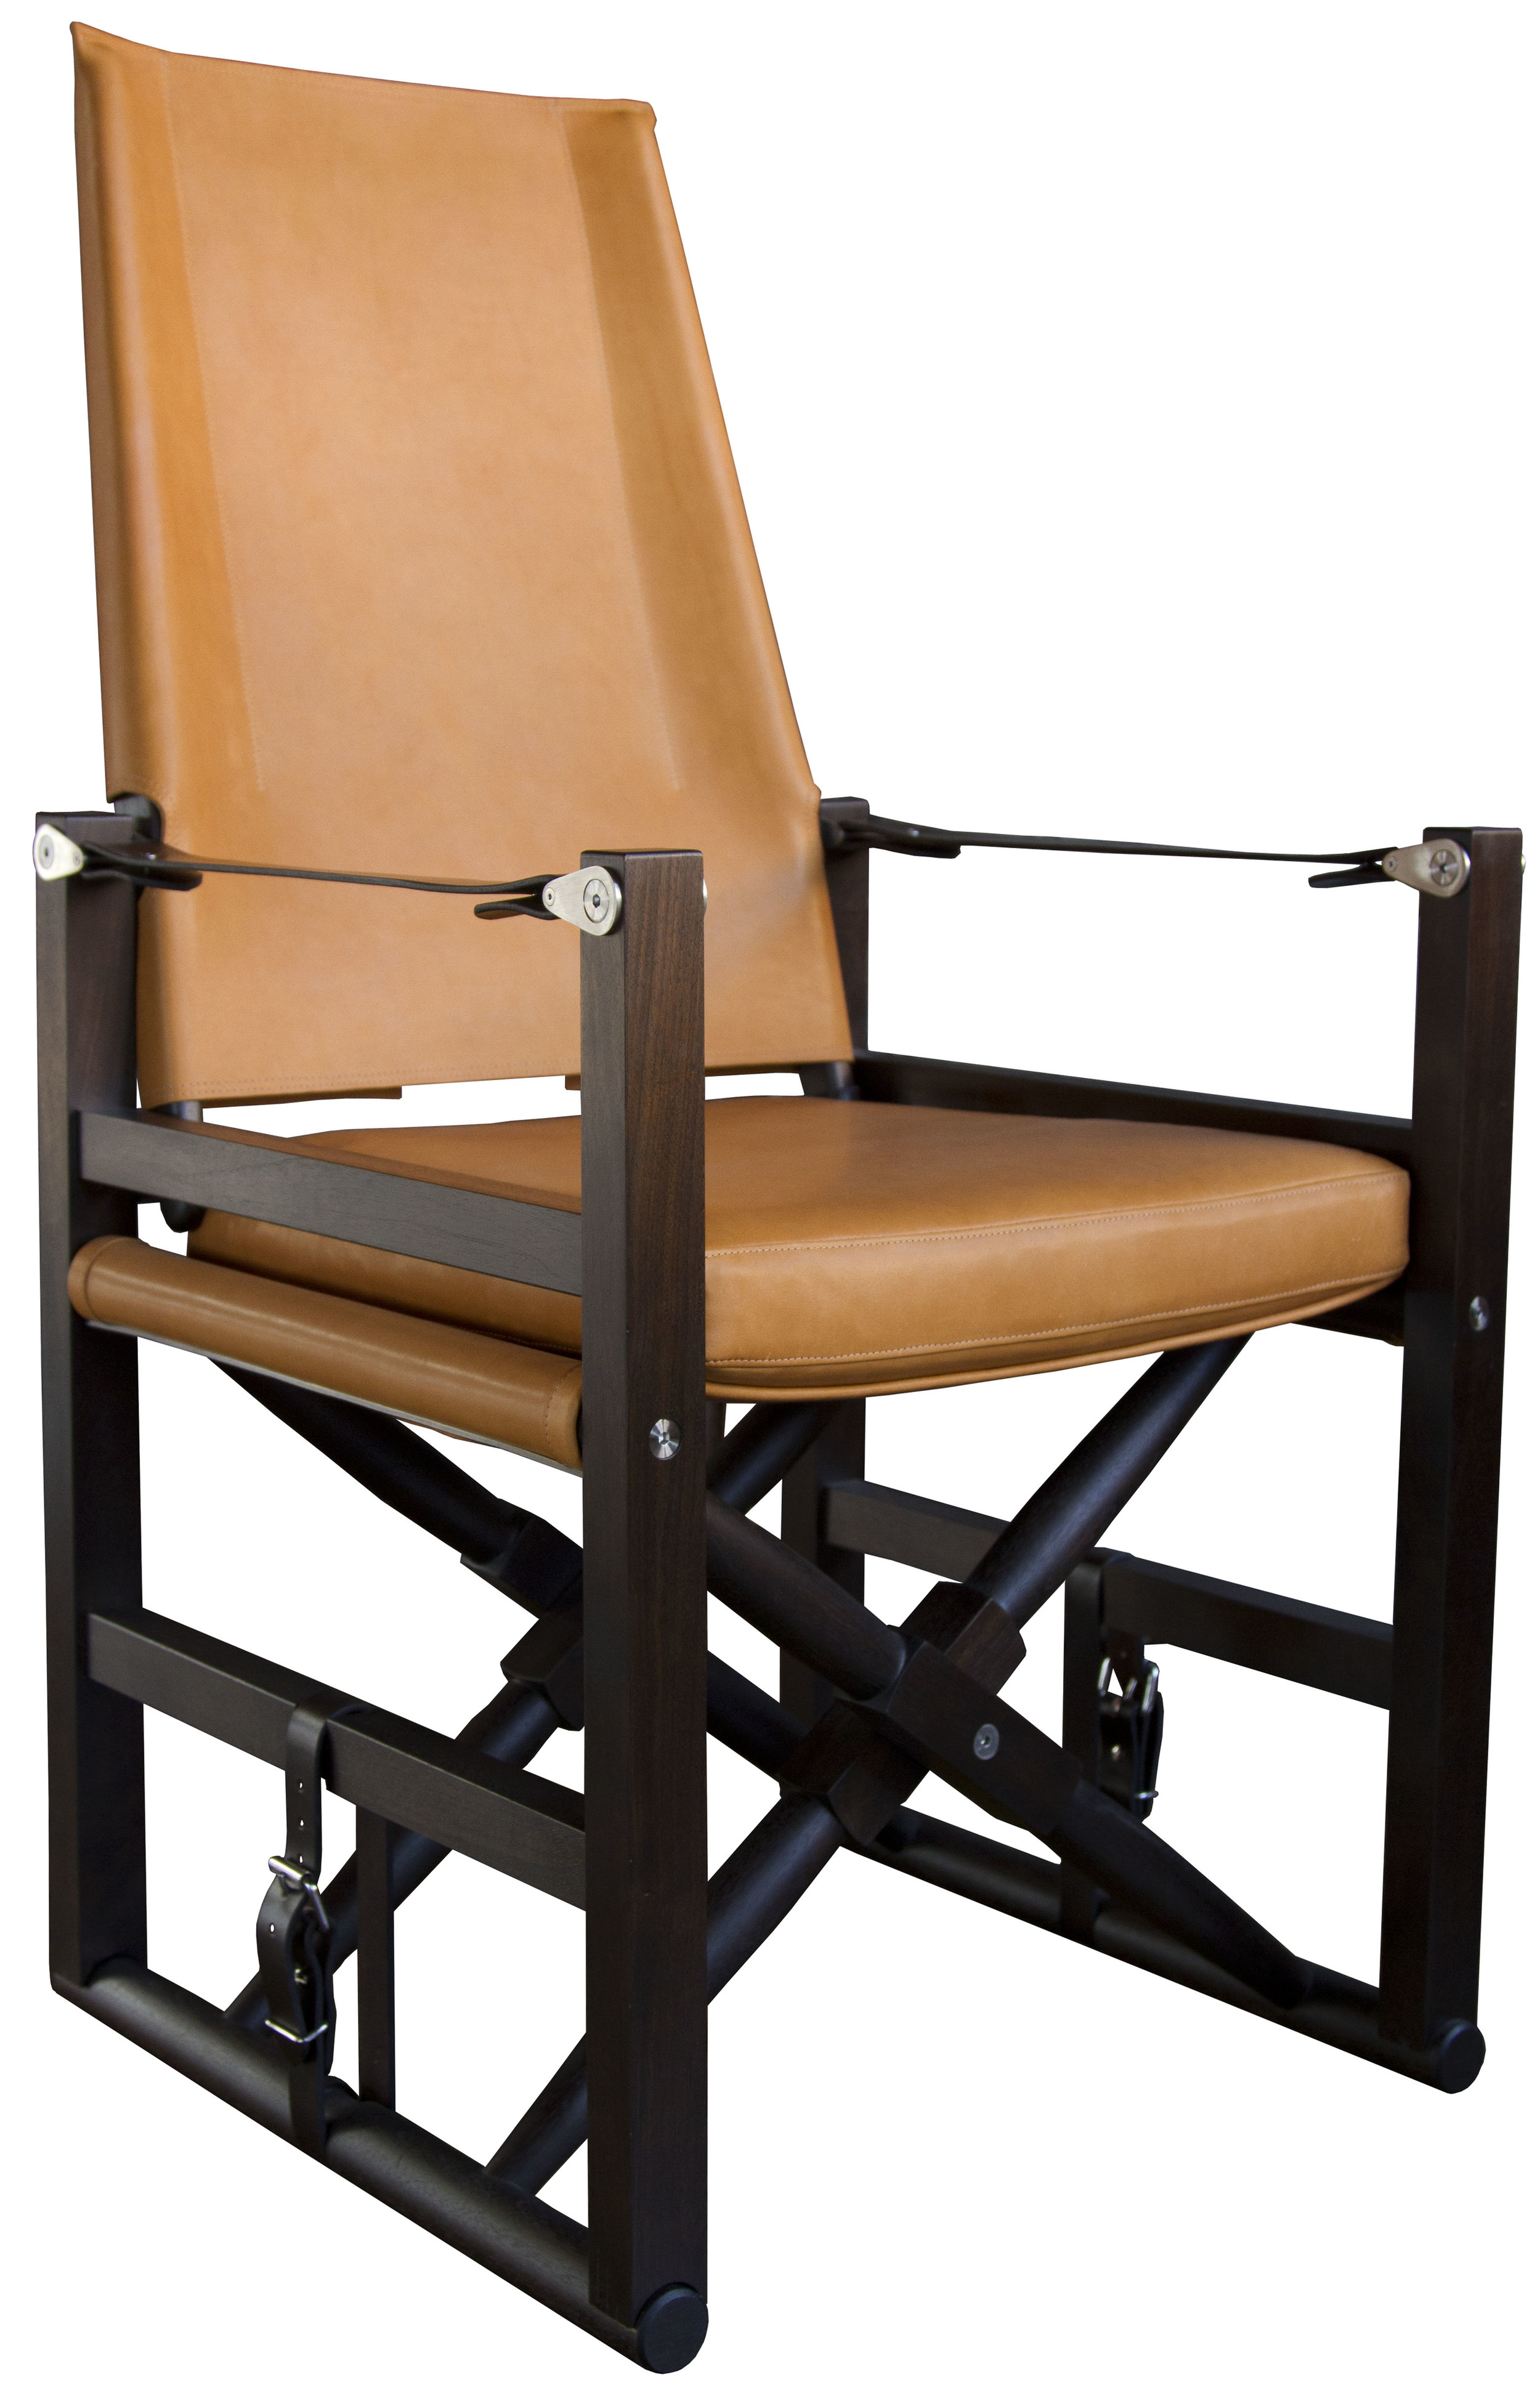 Cabourn Folding Chair - Wide